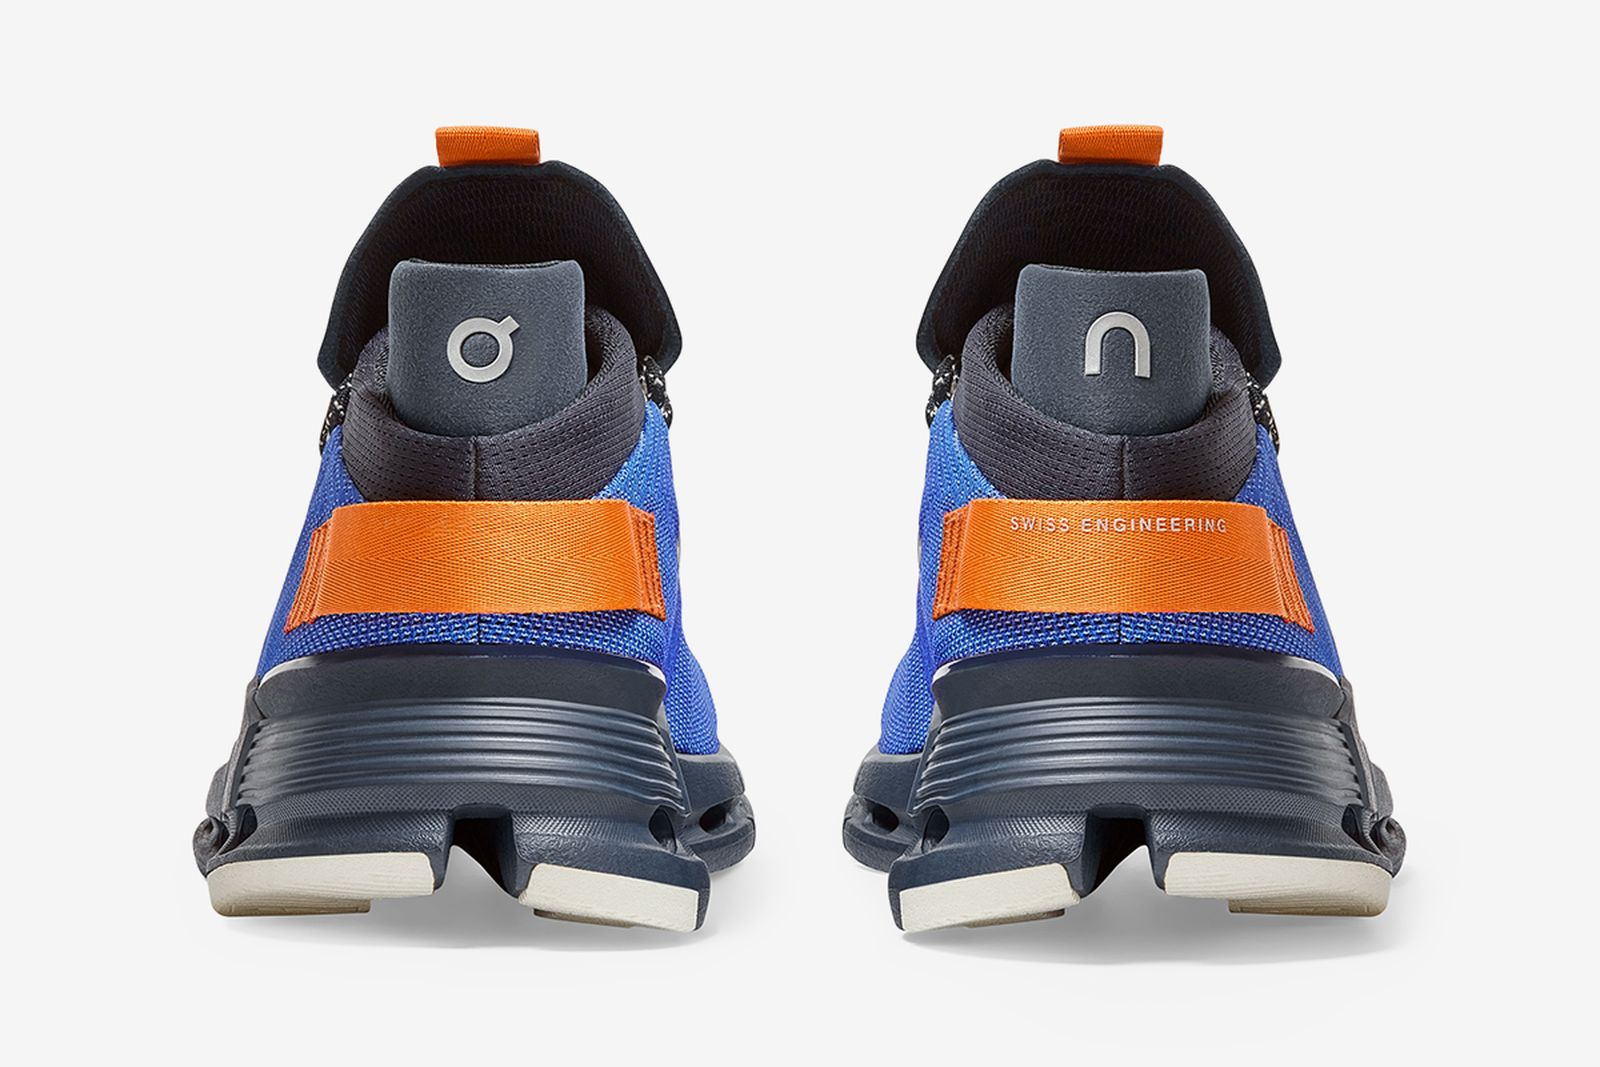 daily-sneaker-news-03-31-2021-1-03